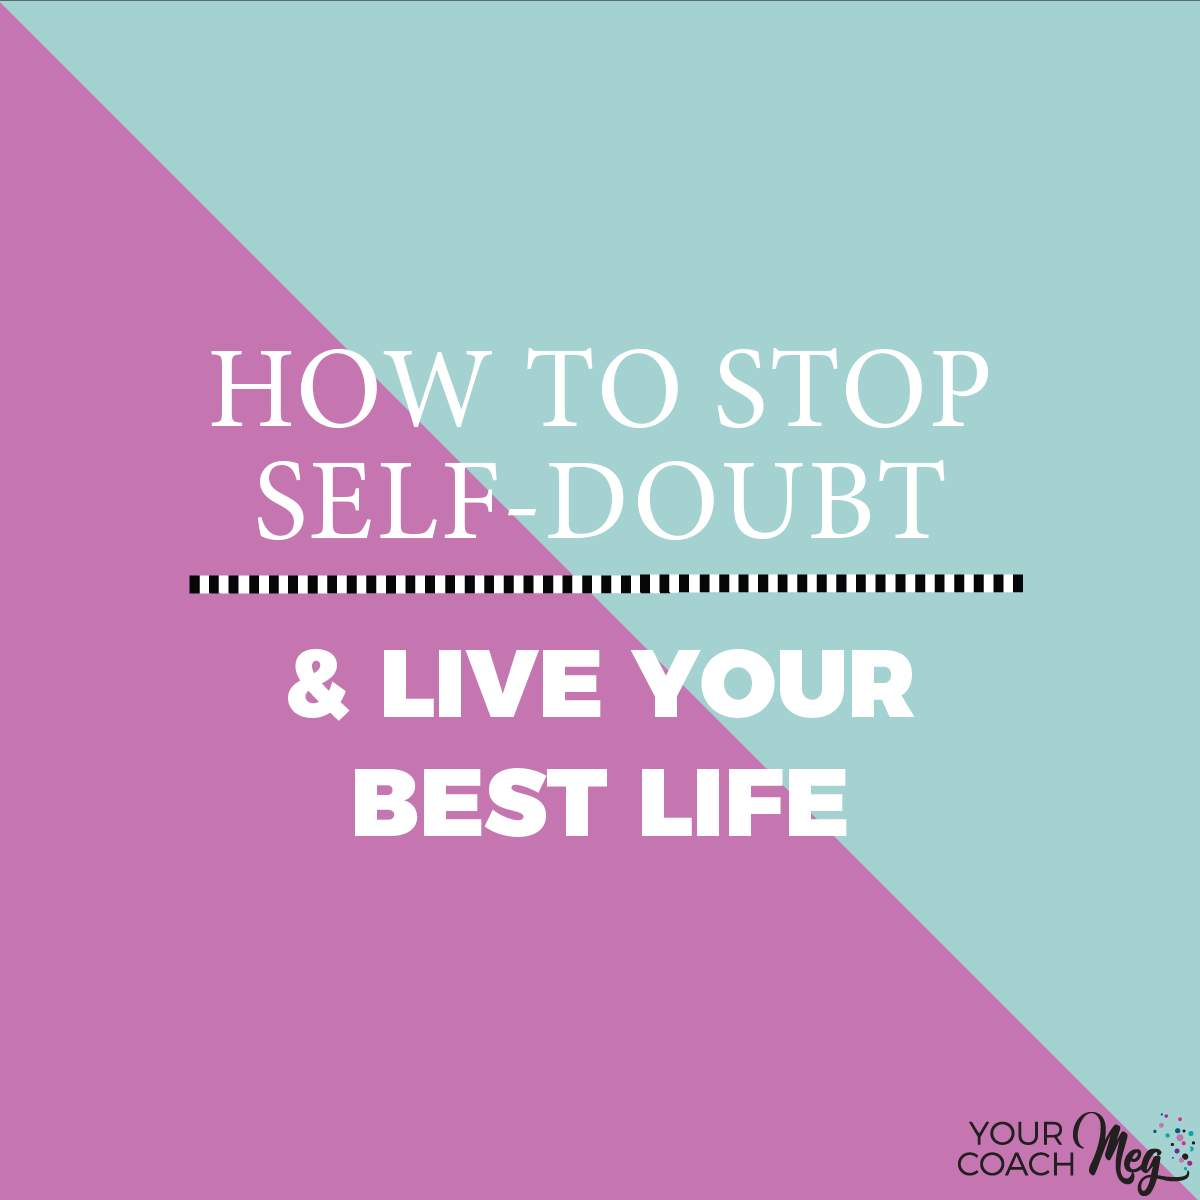 HOW TO STOP SELF DOUBT